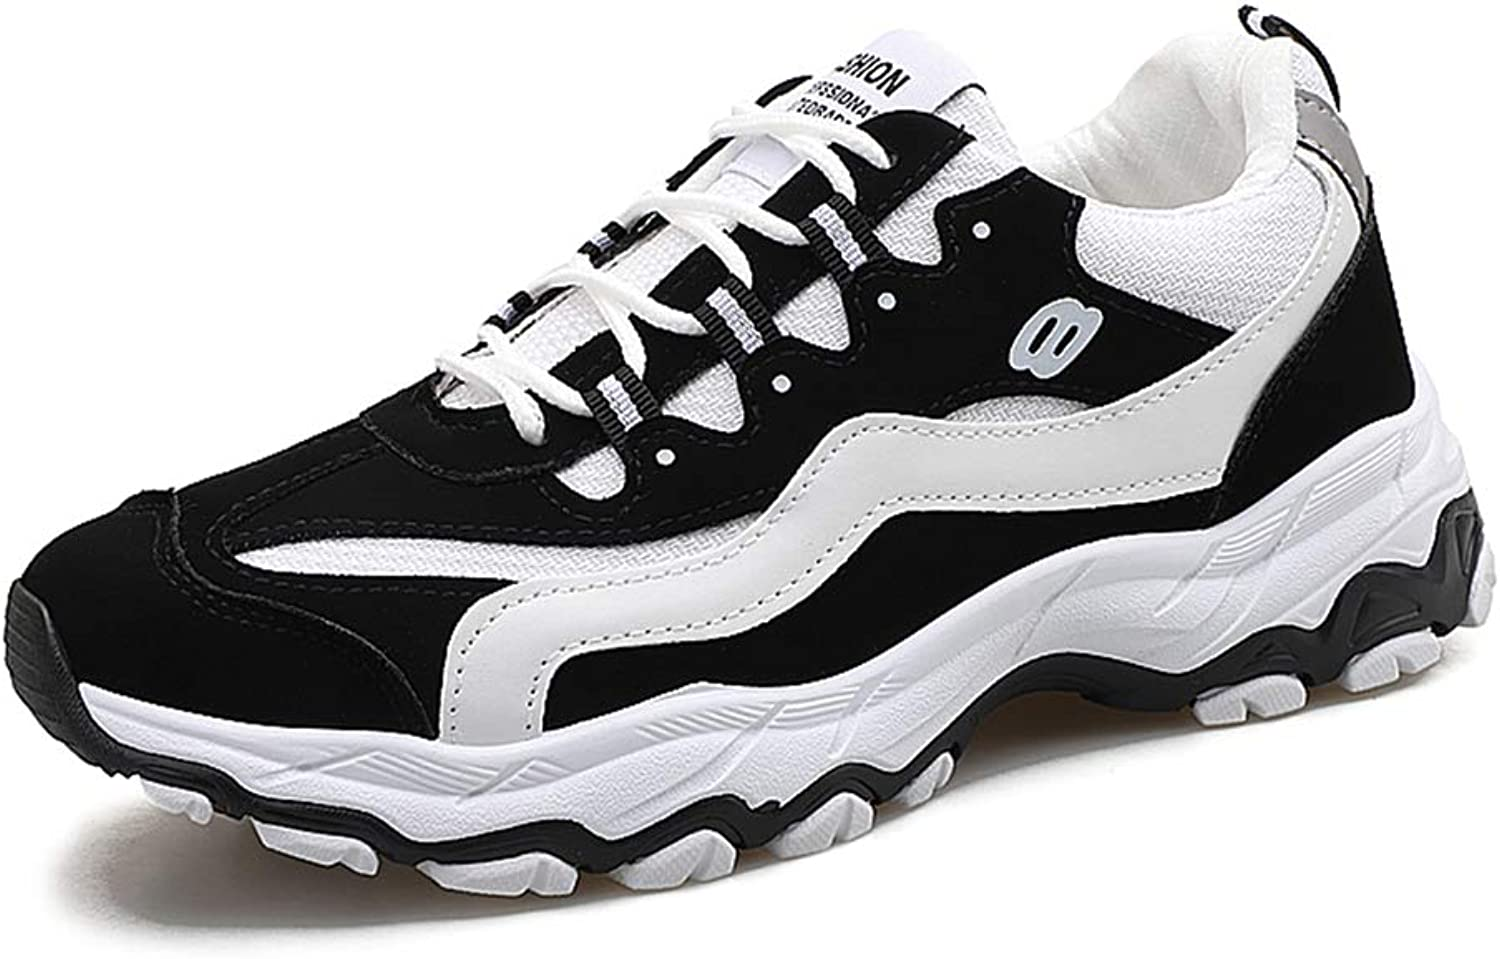 Mens Trainers, Casual Walking shoes, Sport Sneakers, Running shoes, Cross Trainning Trail Men